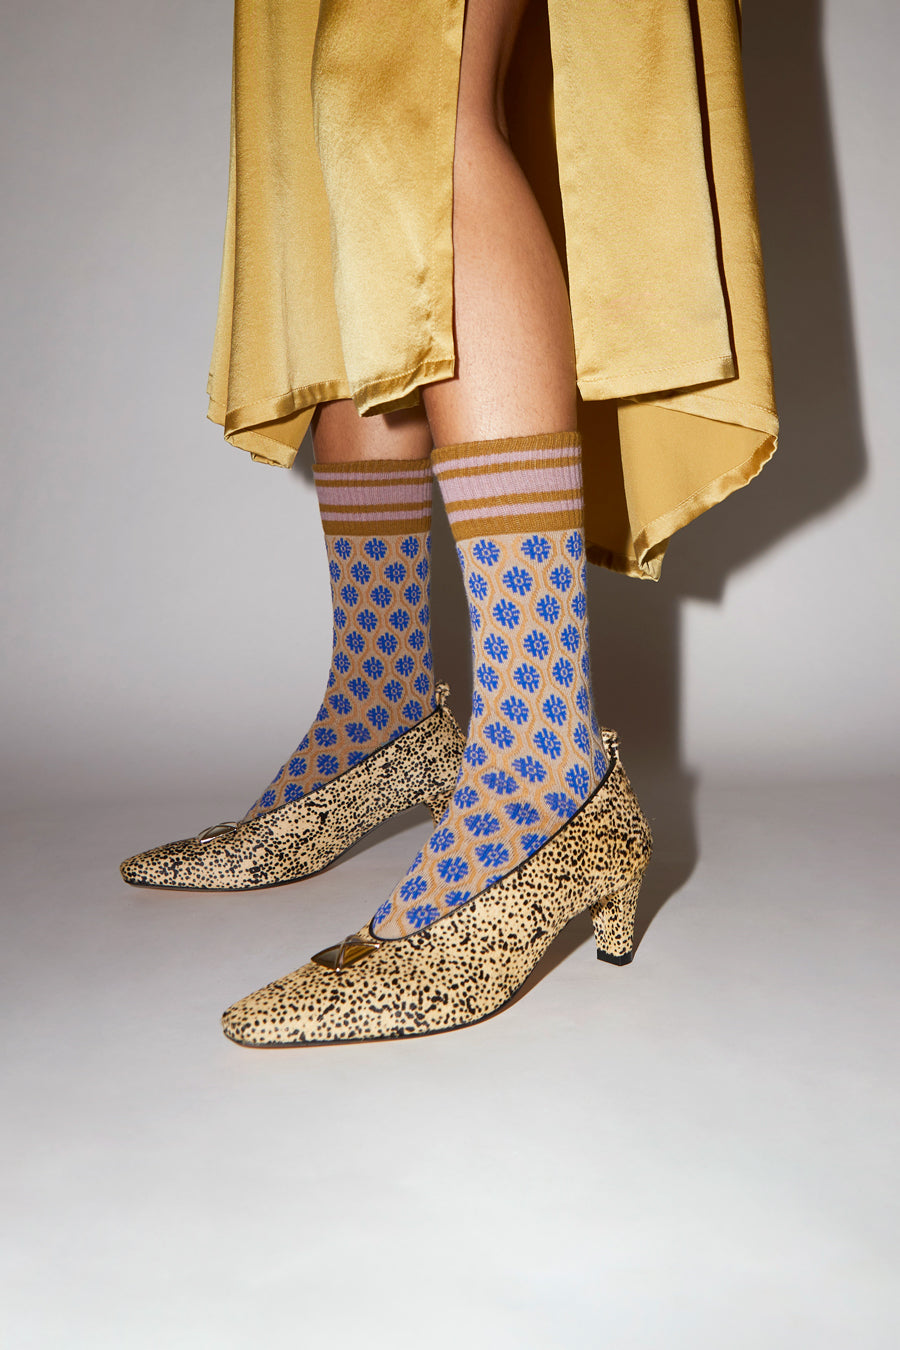 Exquisite J Flower Socks in Beige and Blue